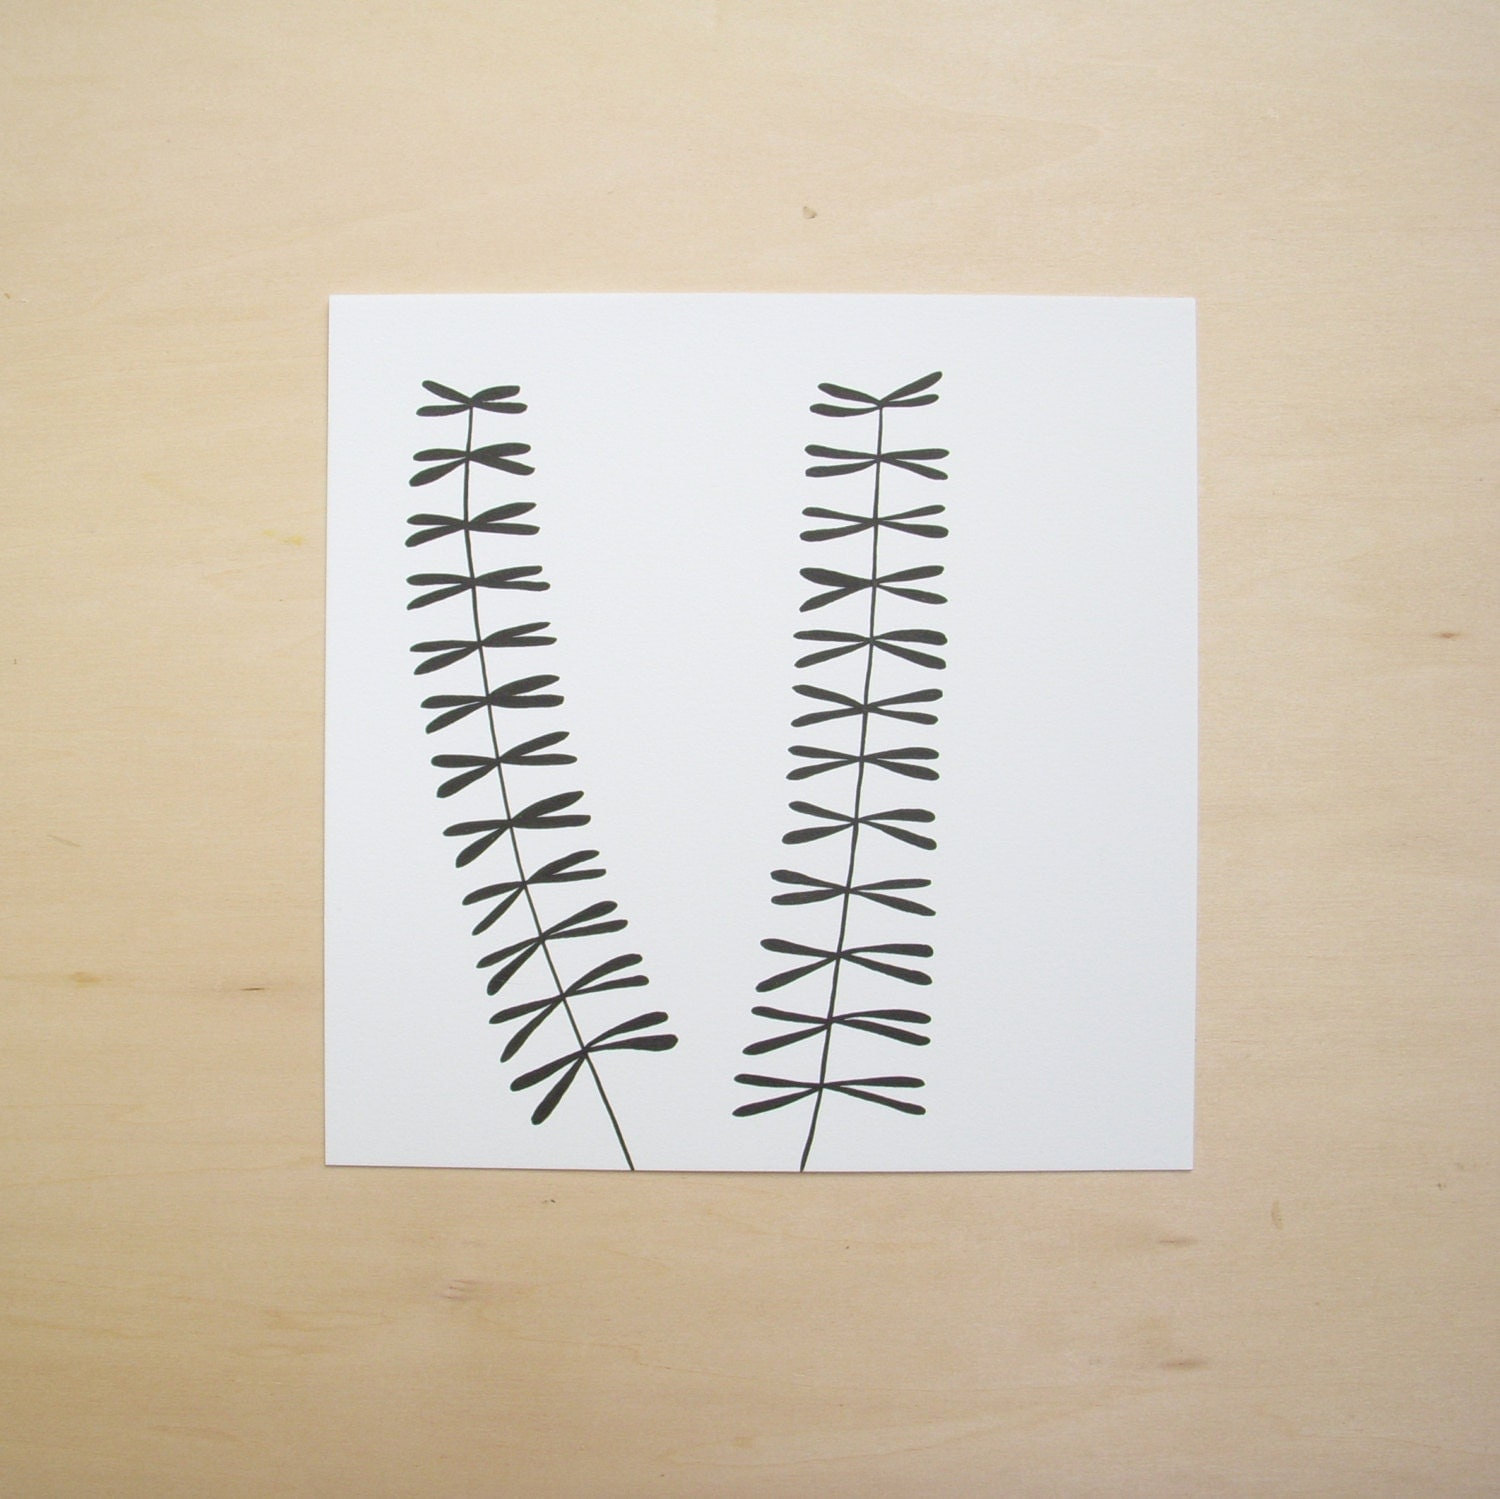 Modern Minimal Plant Drawing in Black and White - mustkeepmaking